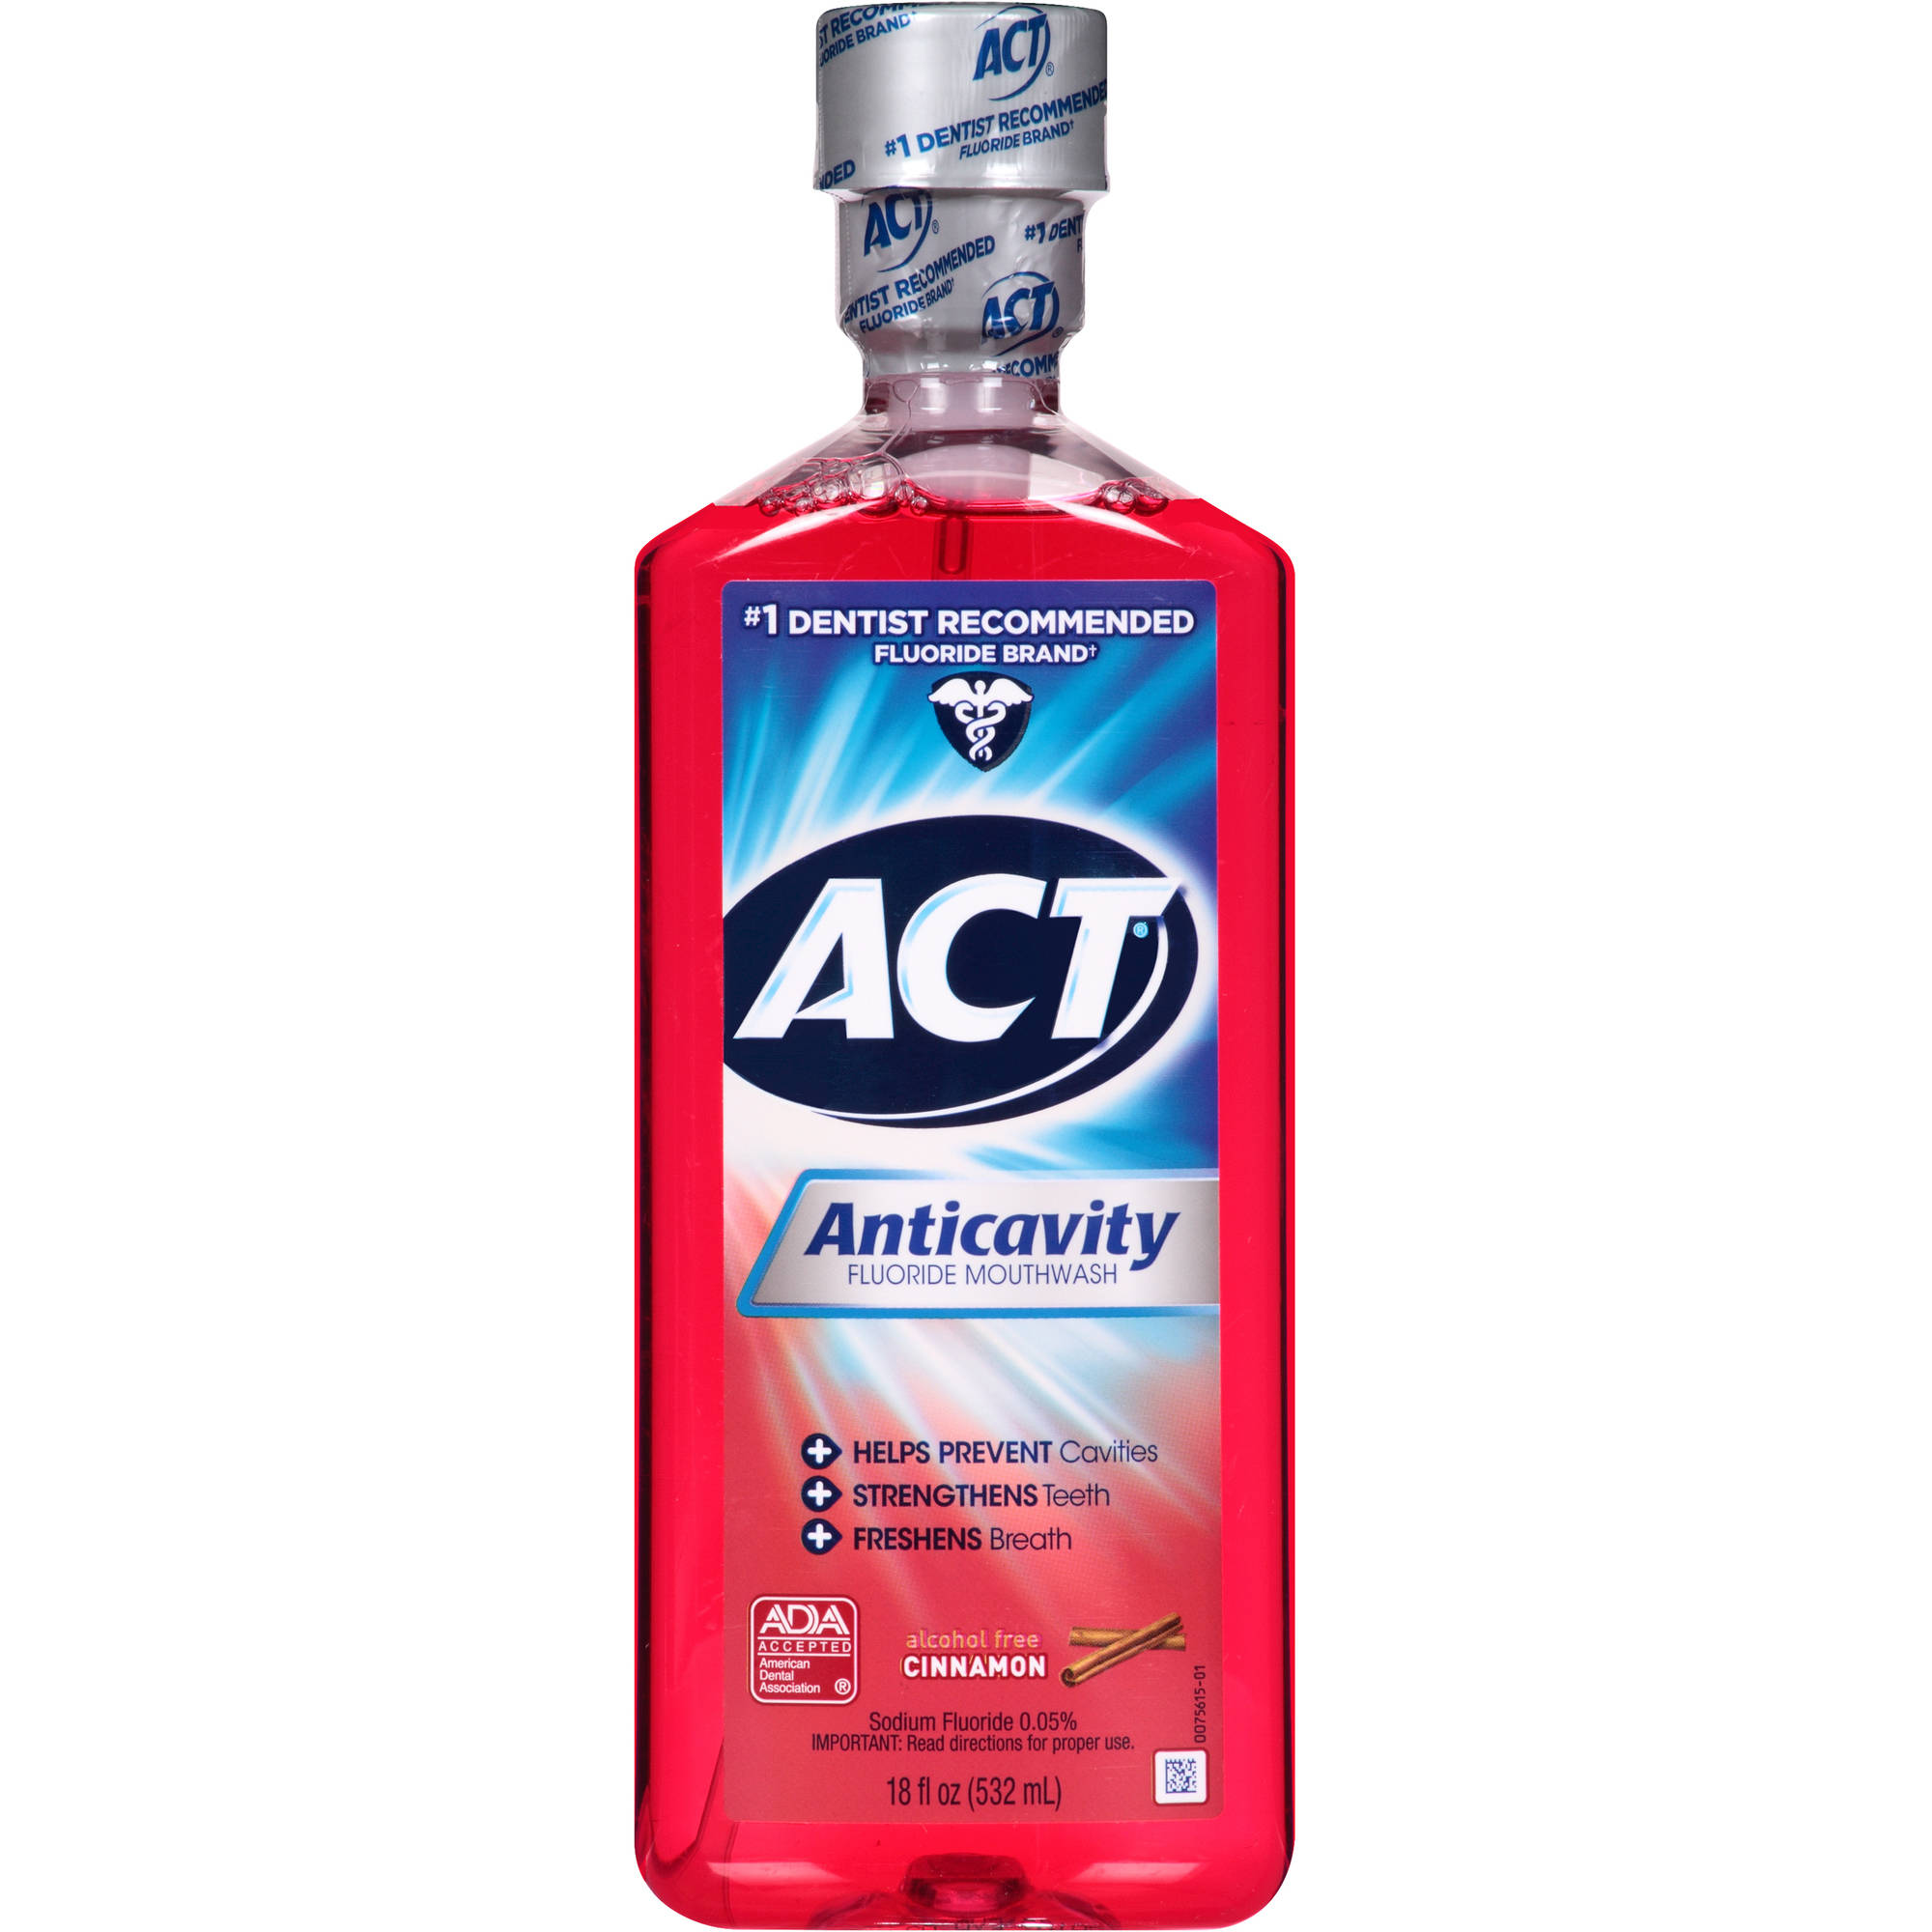 ACT Cinnamon Anticavity Fluoride Mouthwash, 18 oz